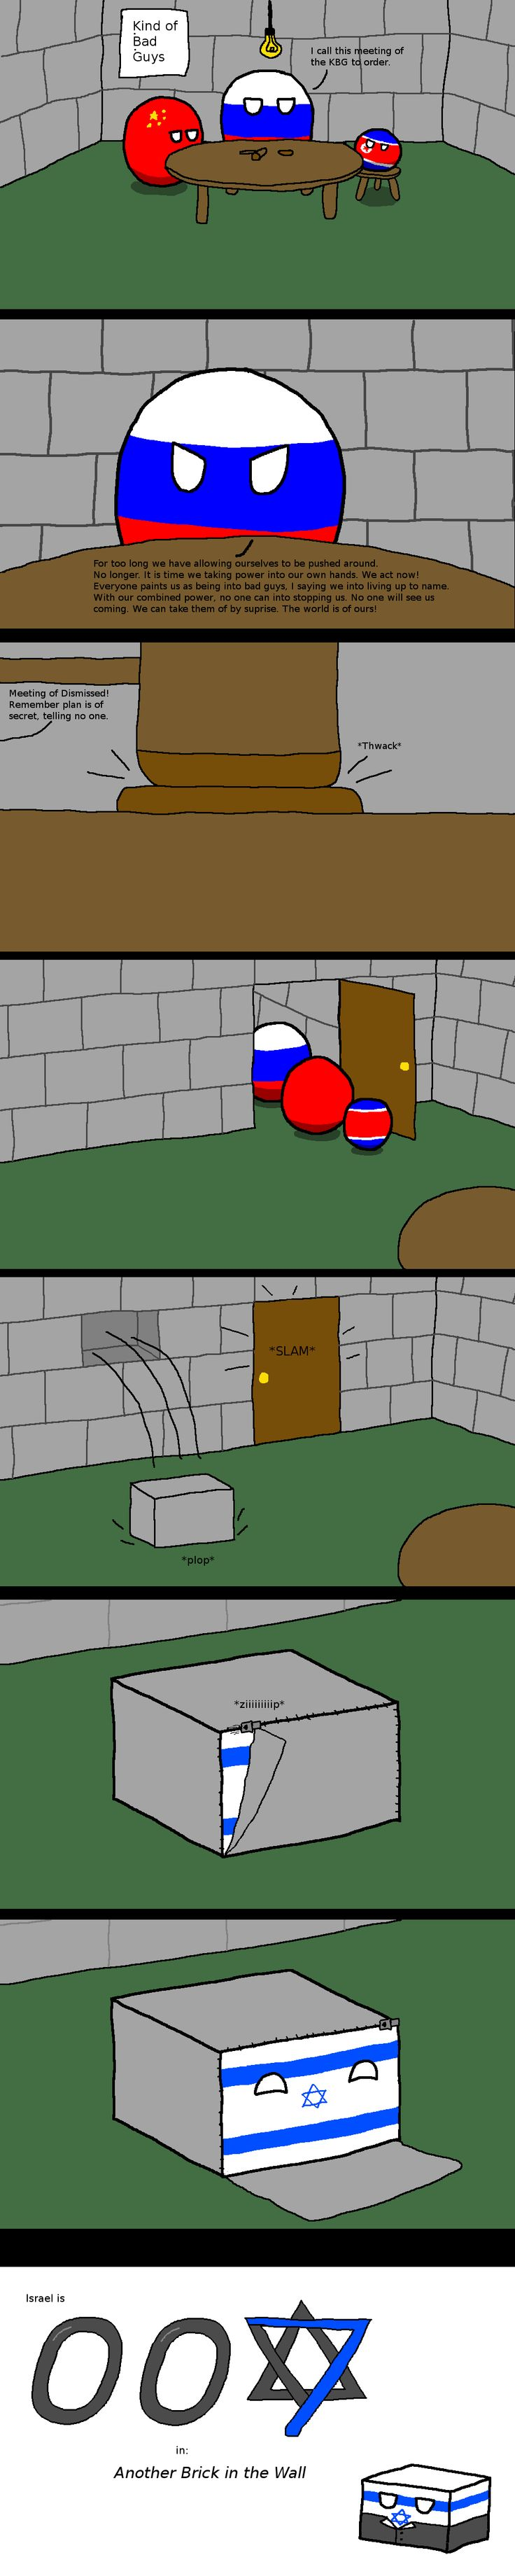 """The Perfect Disguise"" ( Russia, China, North Korea, Israel ) by the xfiles 81 #polandball #countryball #flagball"